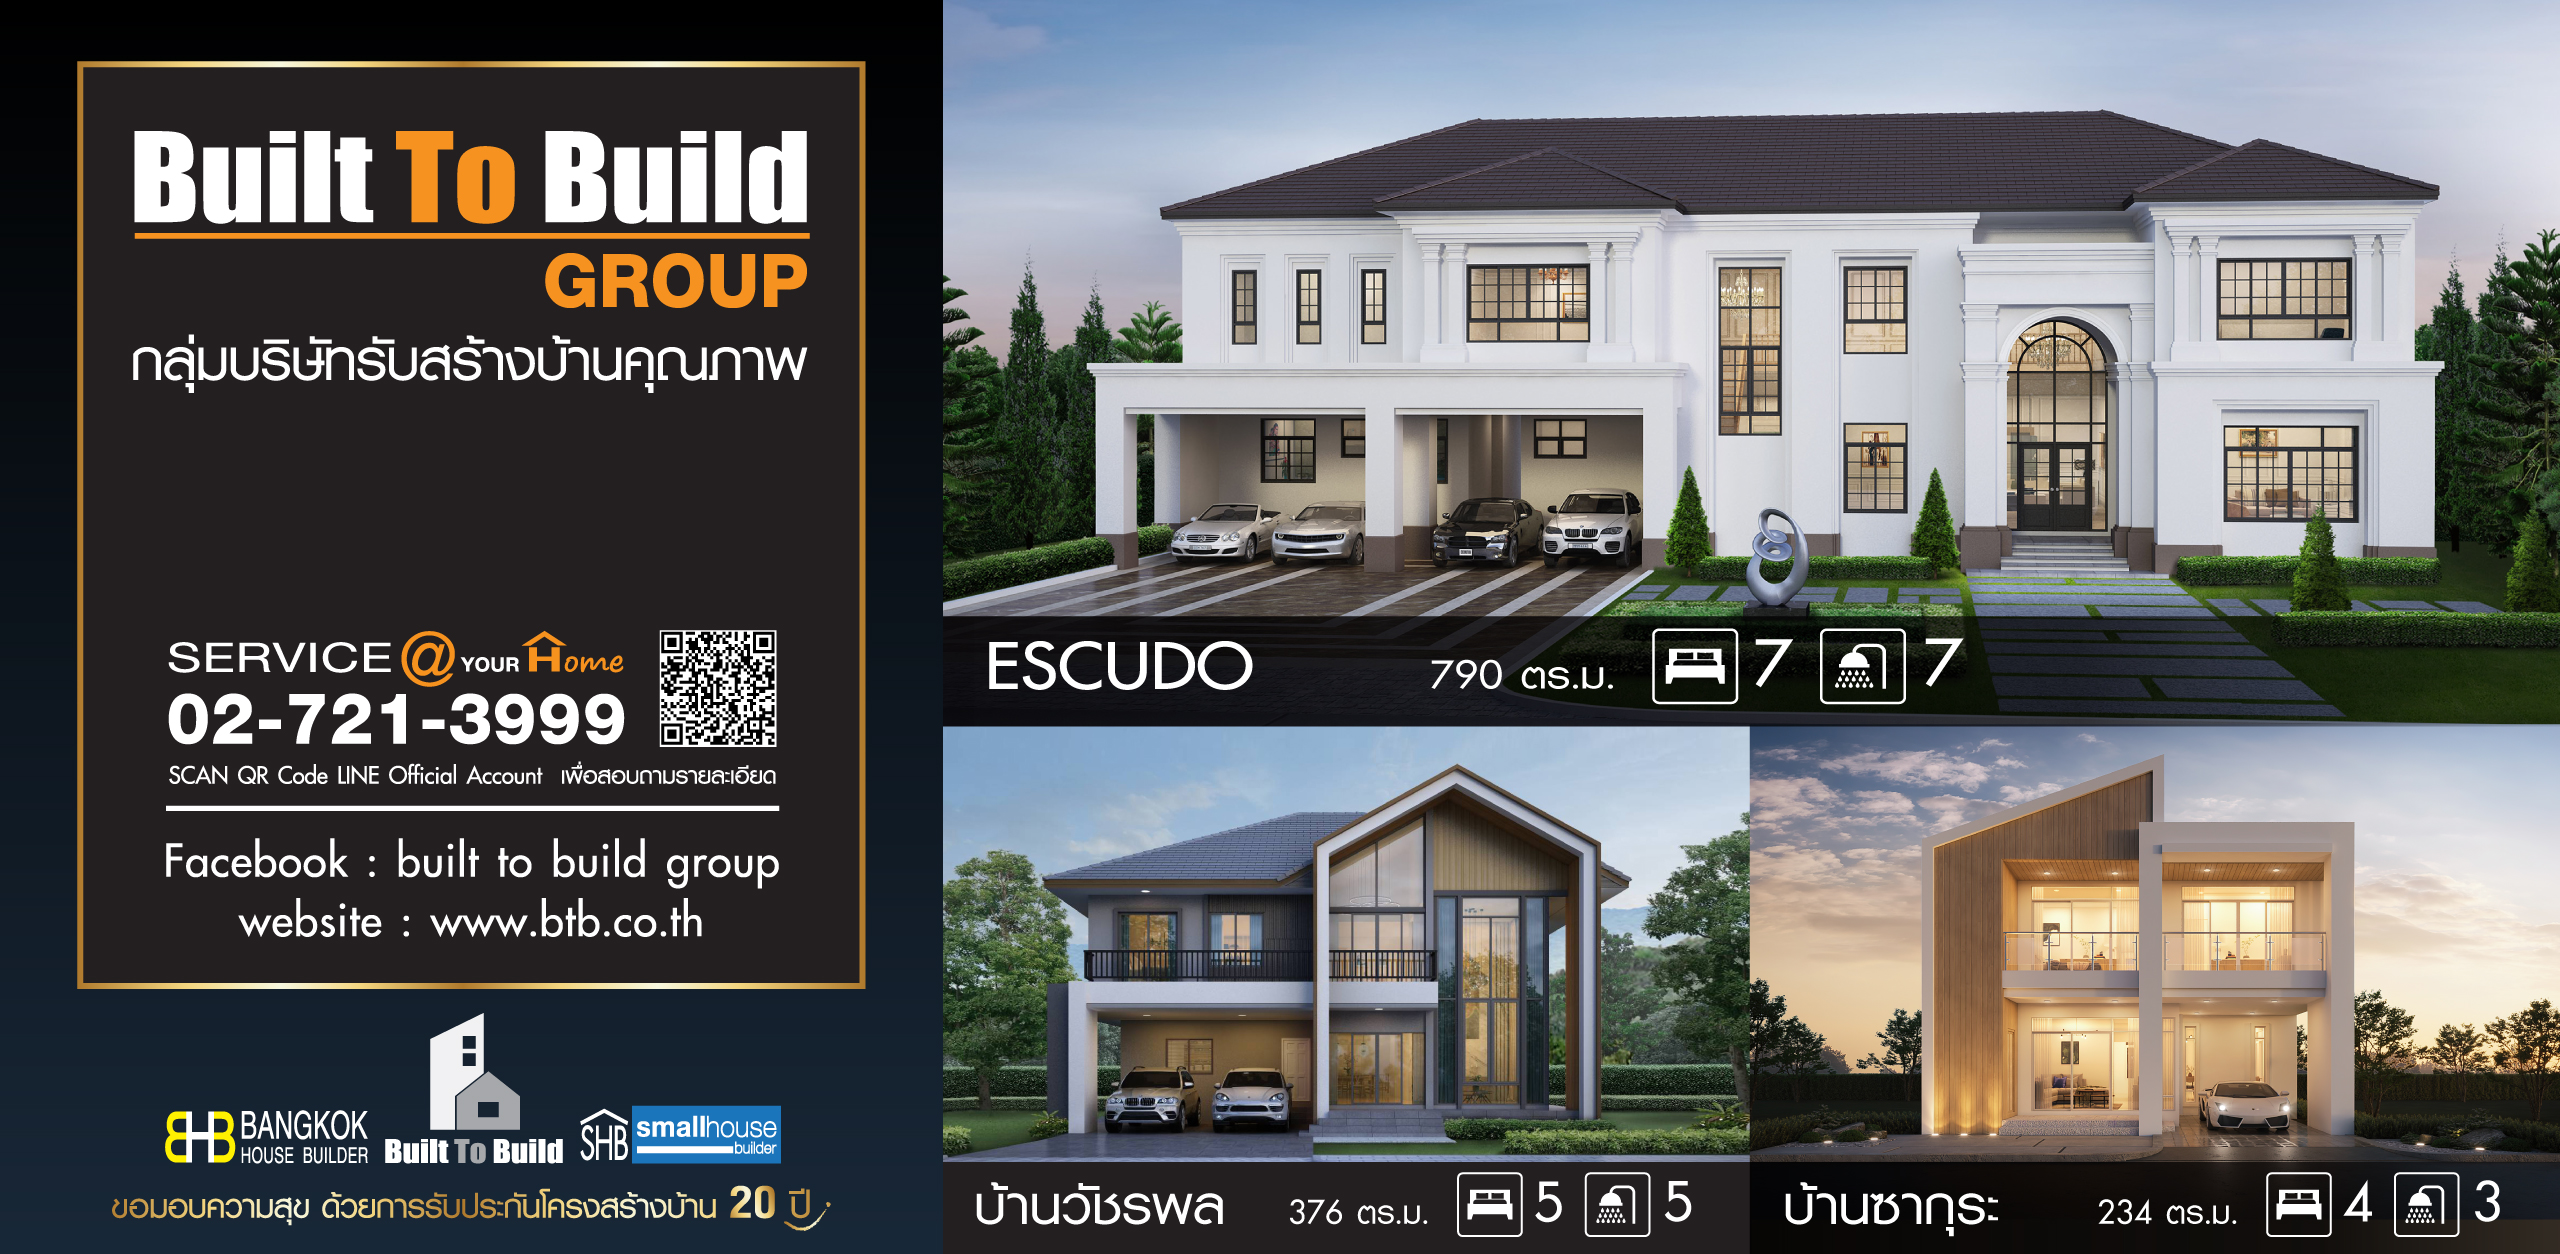 Built To Build Group - 1/03/21 - A1